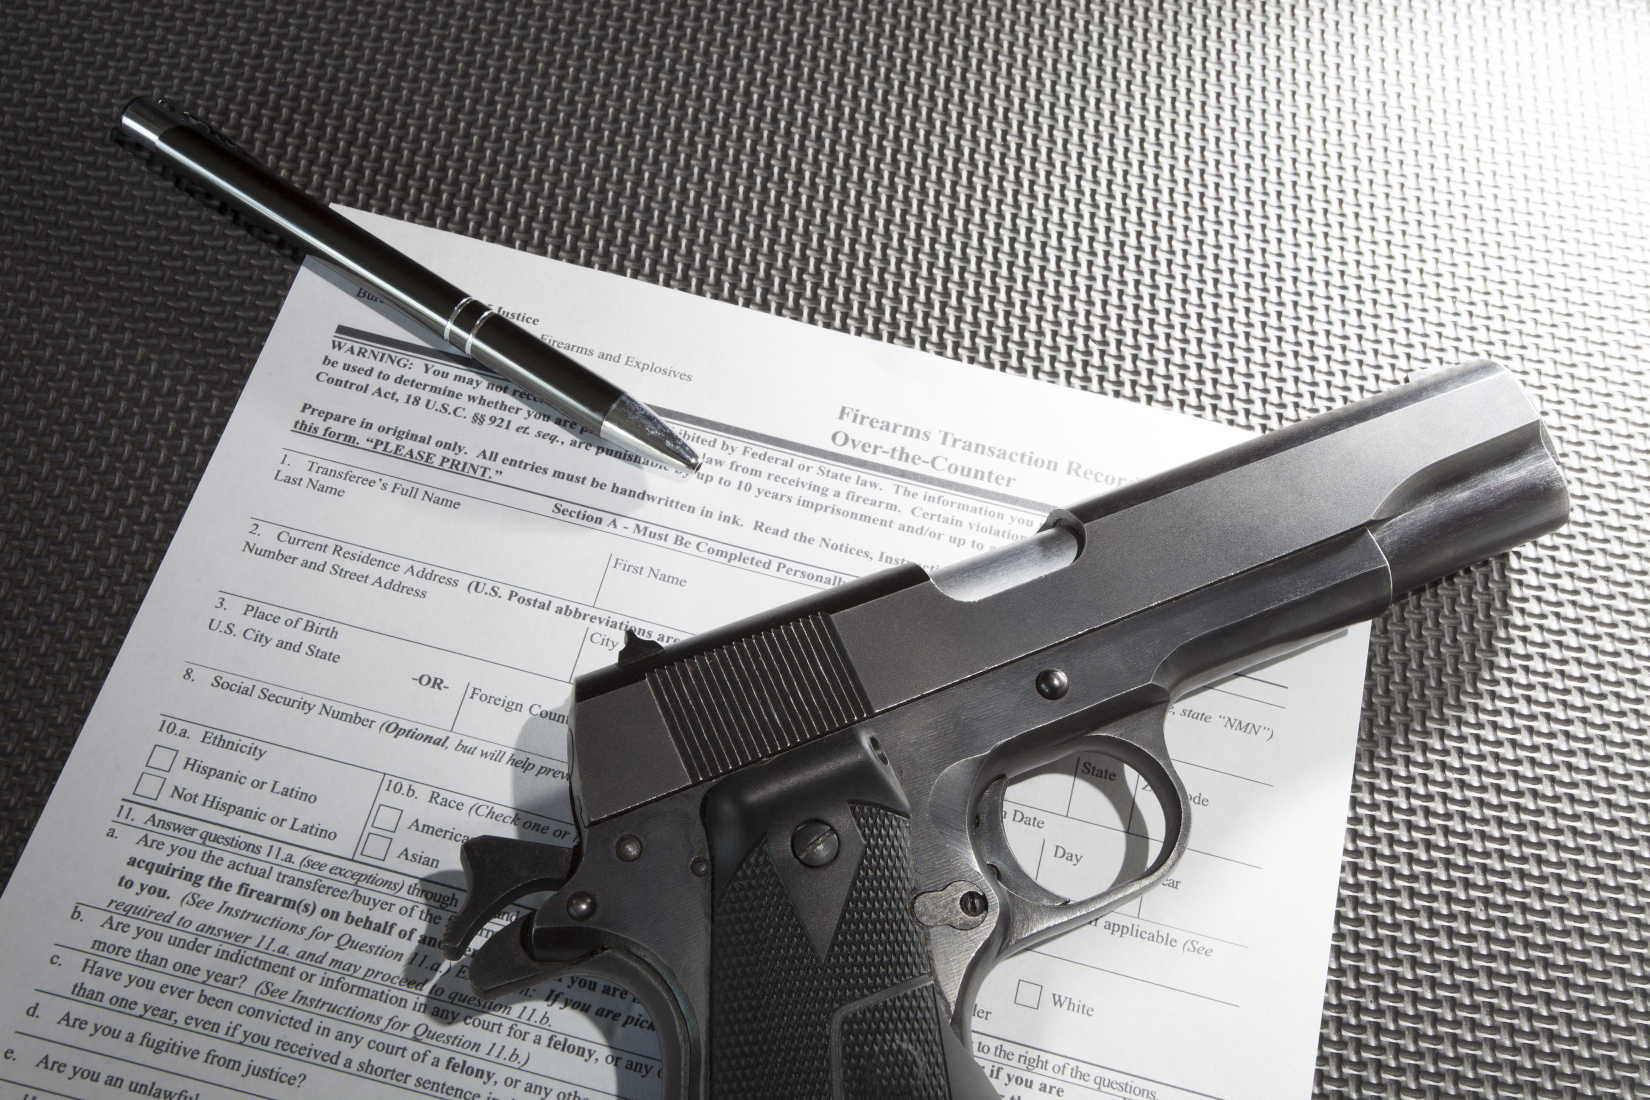 REPORT: ATF Can Use NICS to Monitor People It Suspects Could Eventually Commit a Crime